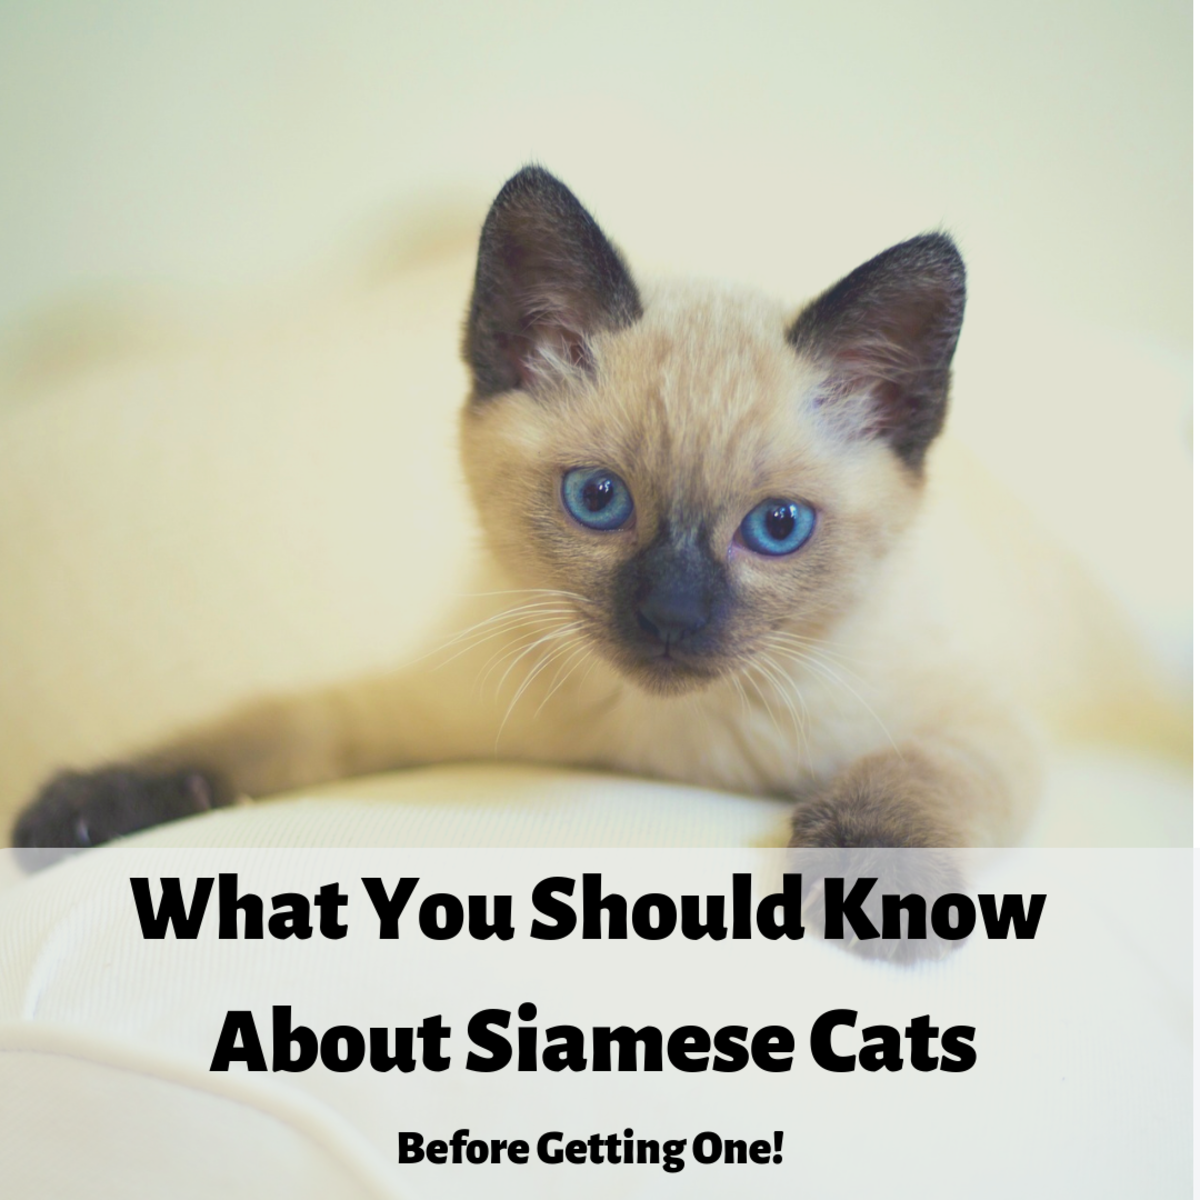 Here are some things you should know before you go out and get a Siamese cat.